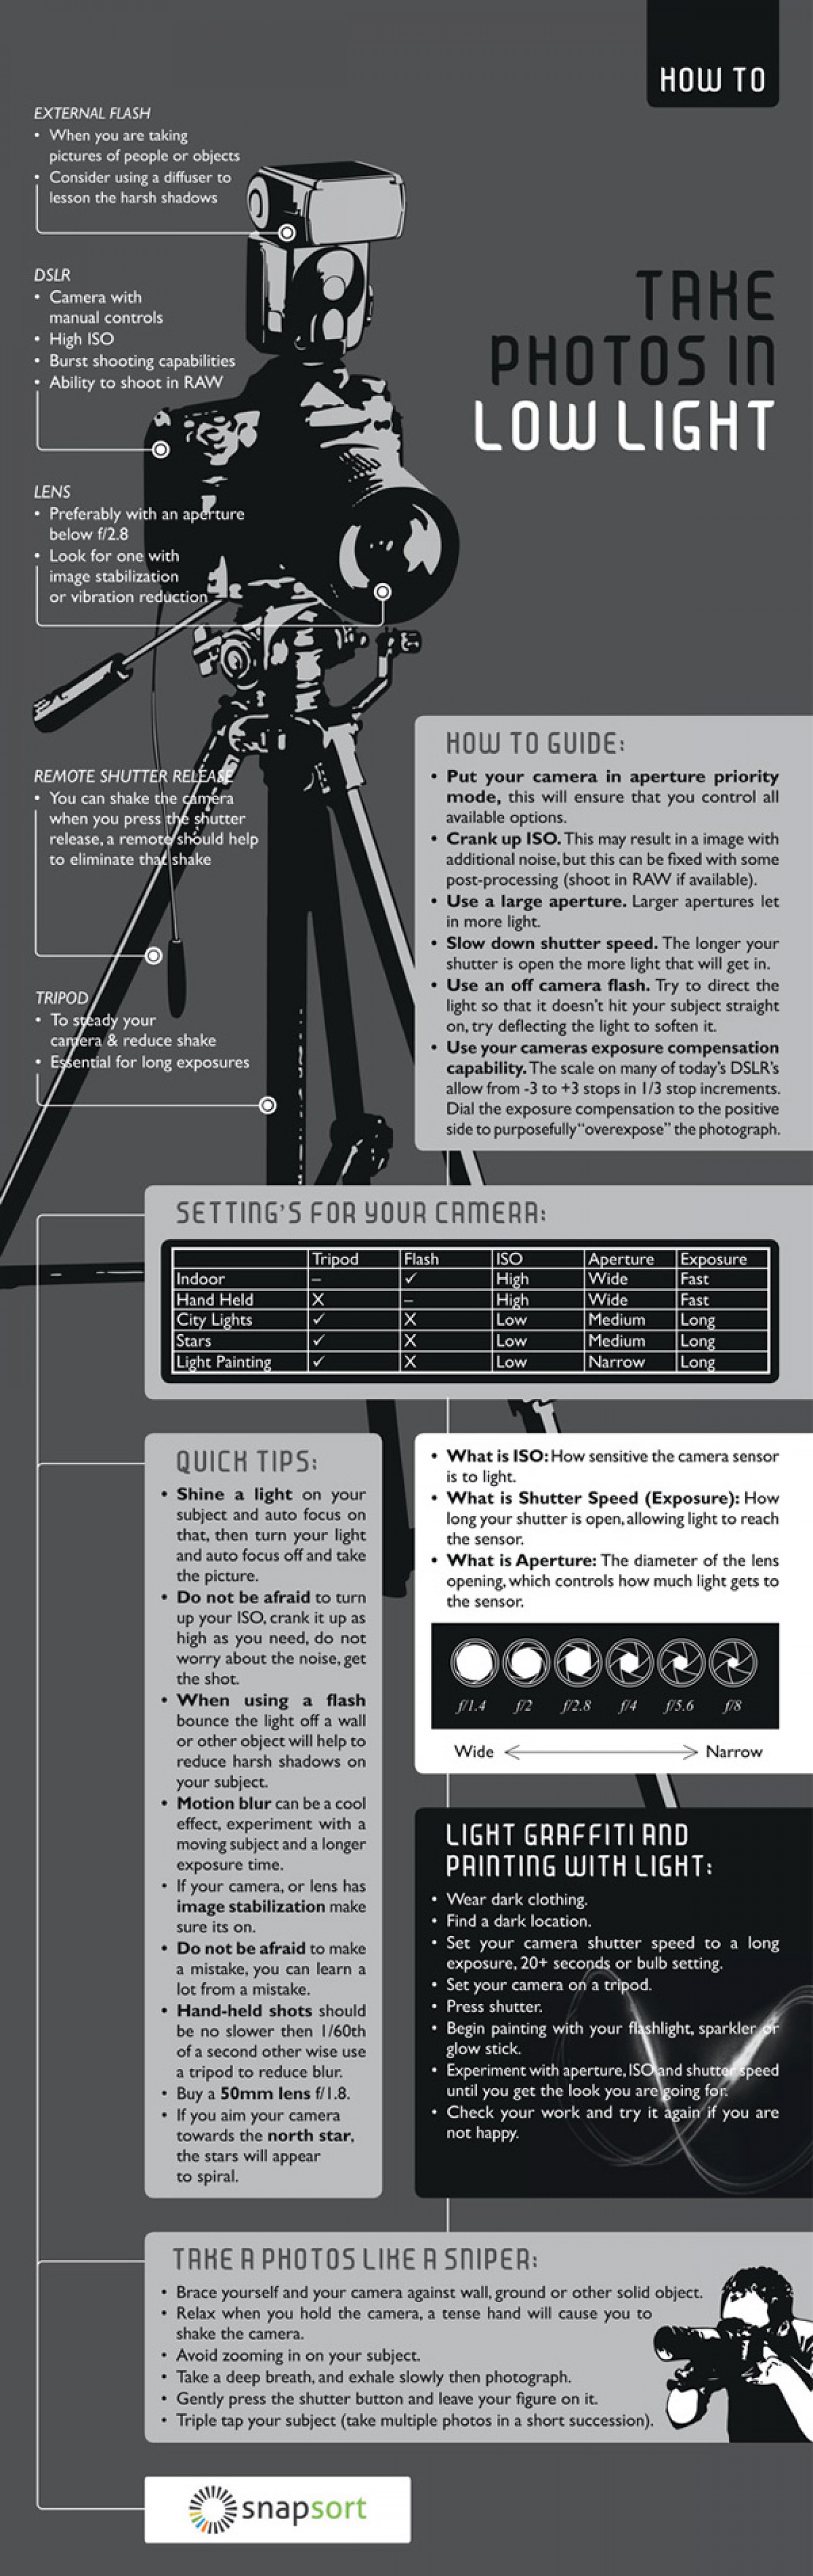 Take Photos in Low Light Infographic